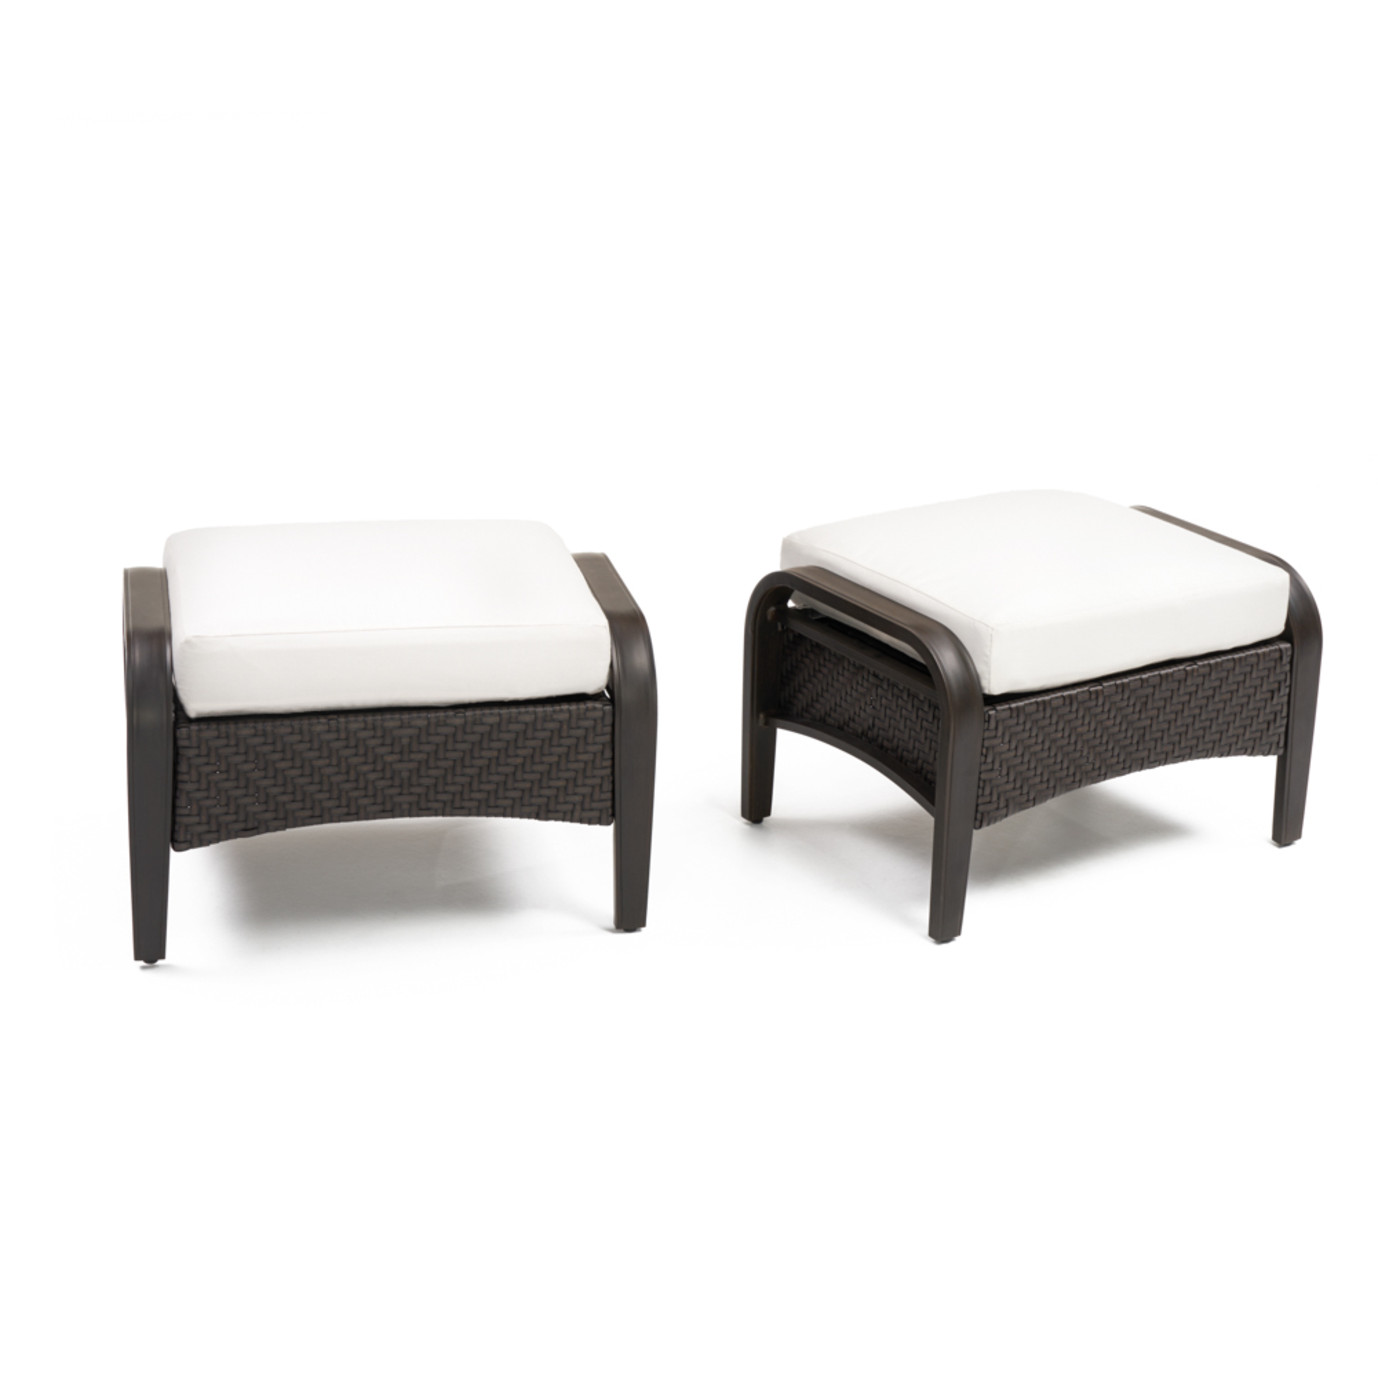 Barcelo™ Club Ottomans - Moroccan Cream